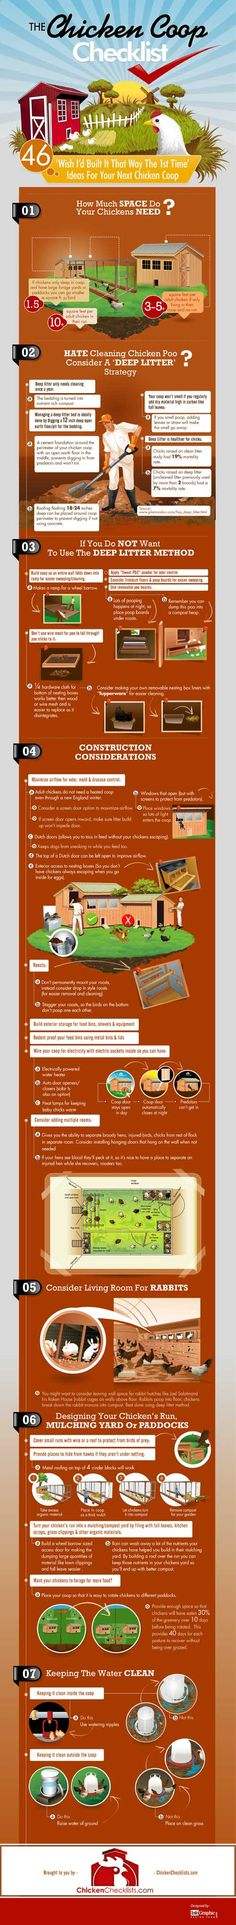 If you are about to start building a chicken coop to  have Chickens be a larger part of your self reliant food supply, then you're going to want to pay attention to the infographic below.  As it turns out, lots of people wish they'd put more thought into building their chicken coops after it's all said and done… as lots of problems come up.  The 'Chicken Coop Checklist' below identifies 46 features to chicken coops that you may want to consider before you start building.